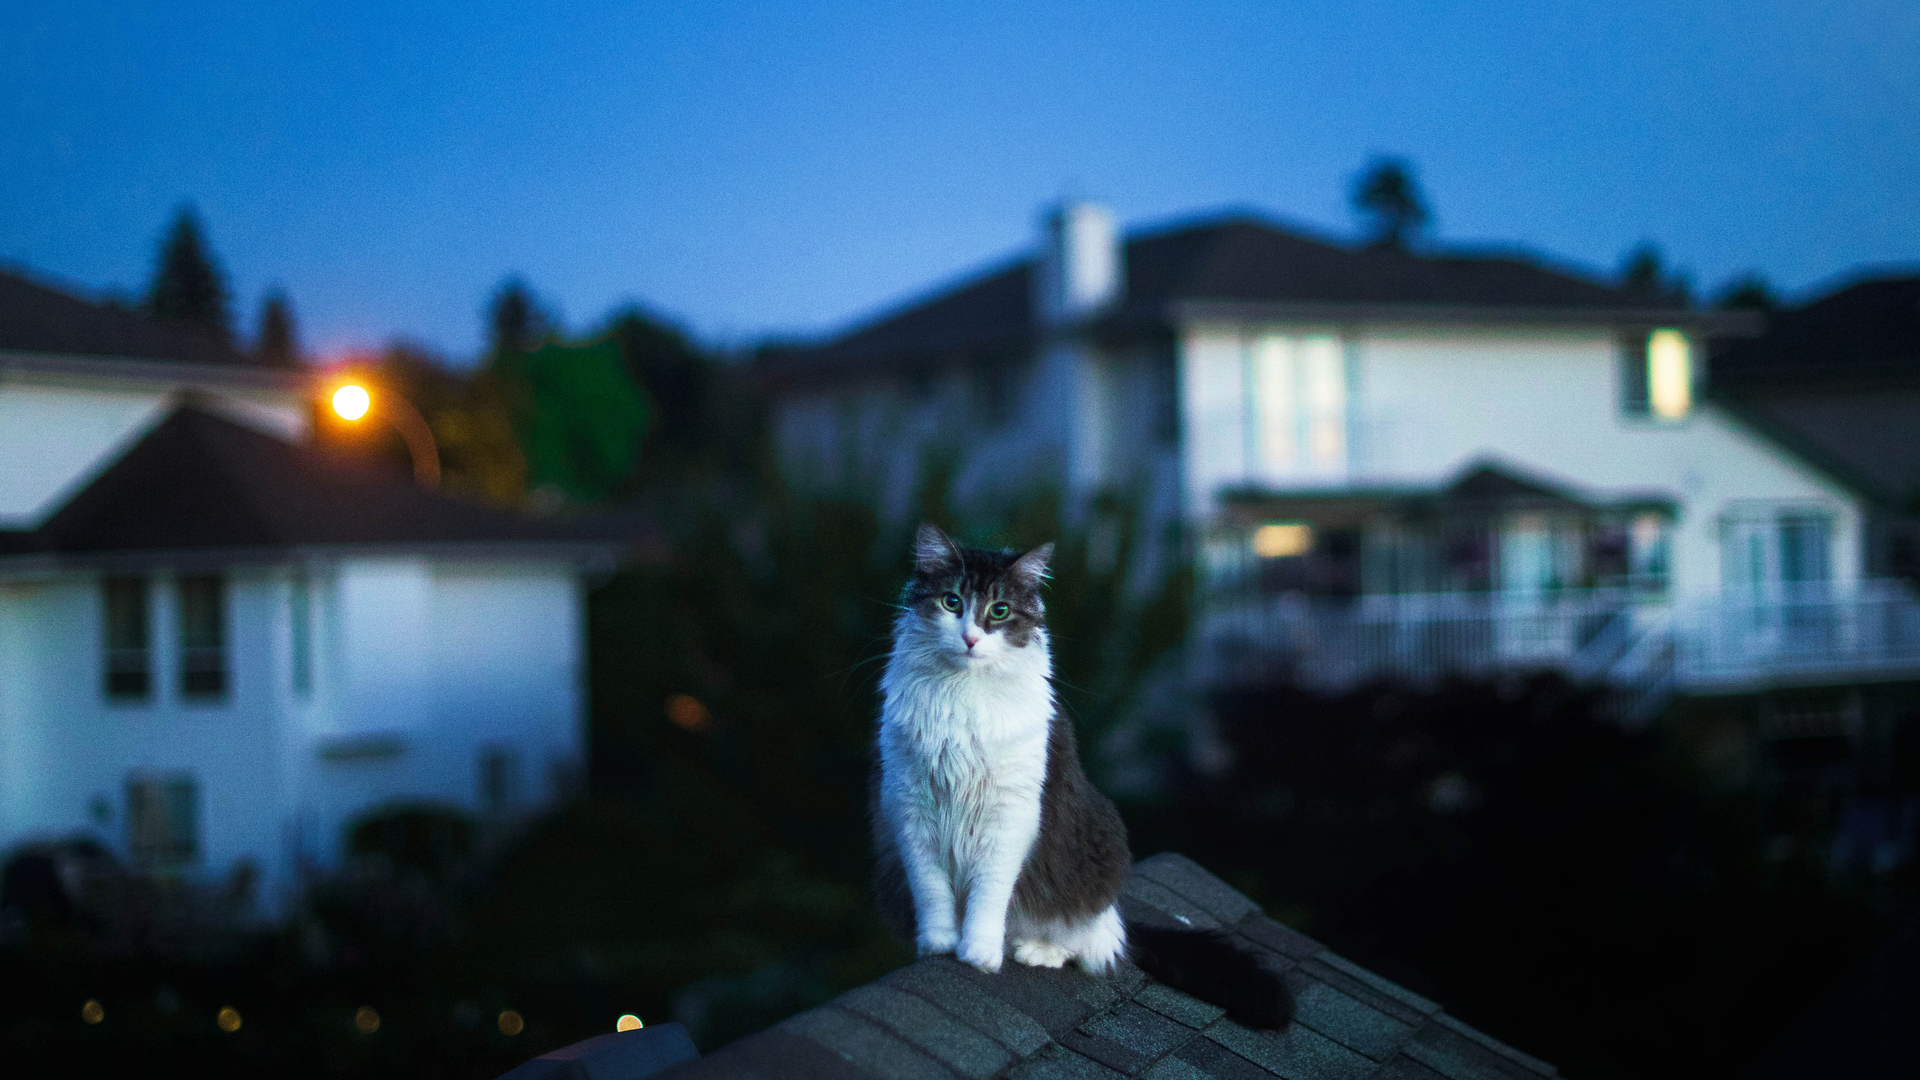 cat-on-roof-5k-kh.jpg